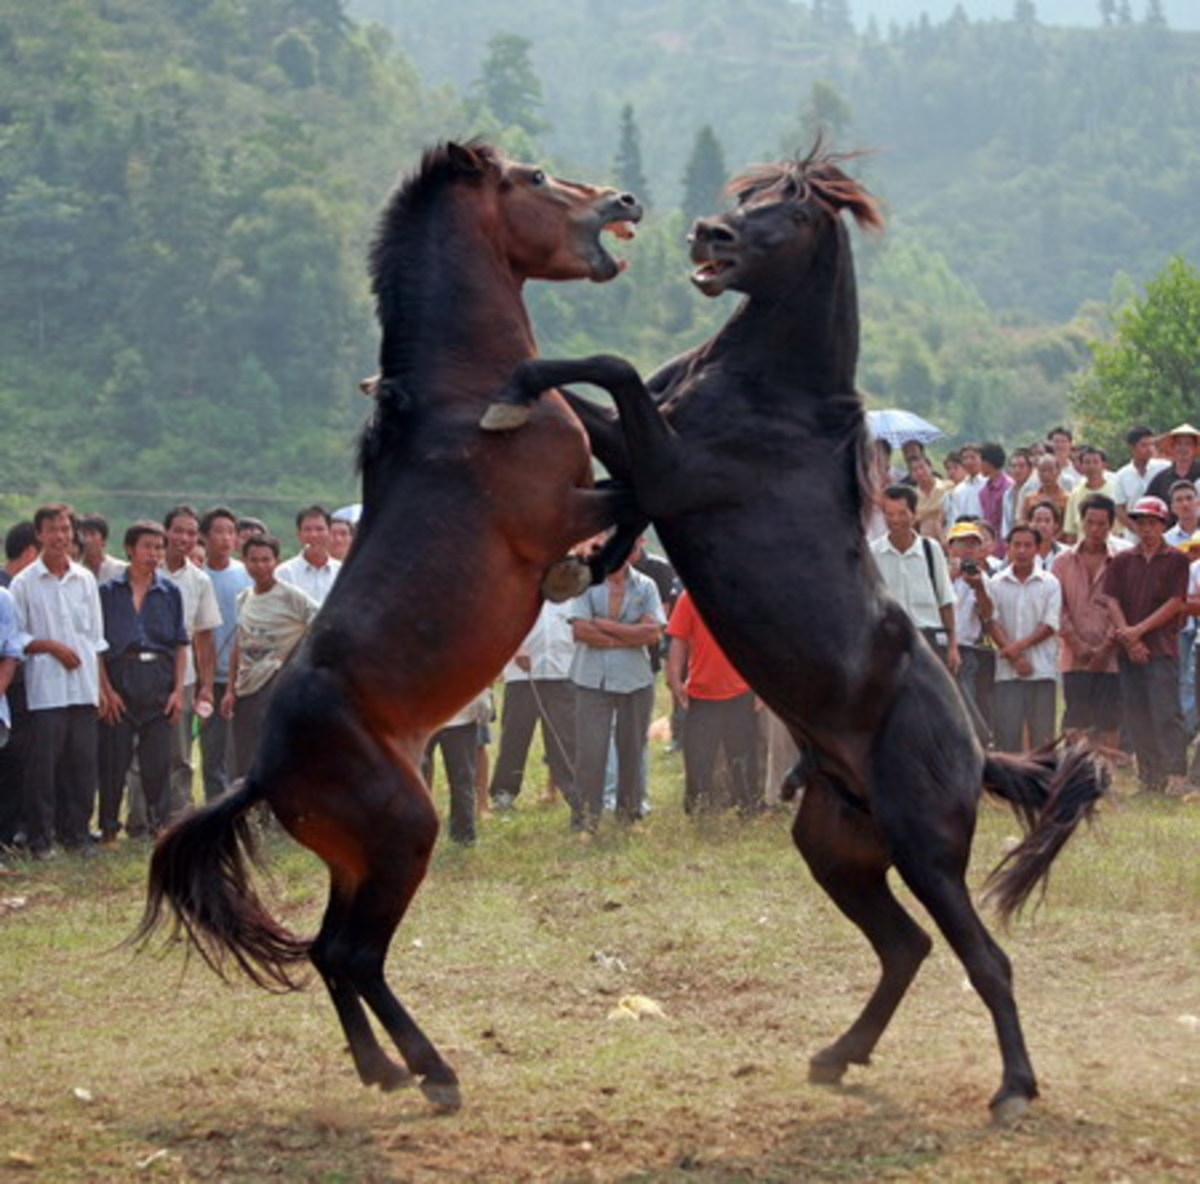 Animal Abuse Horses Animal Cruelty Horse Fighting